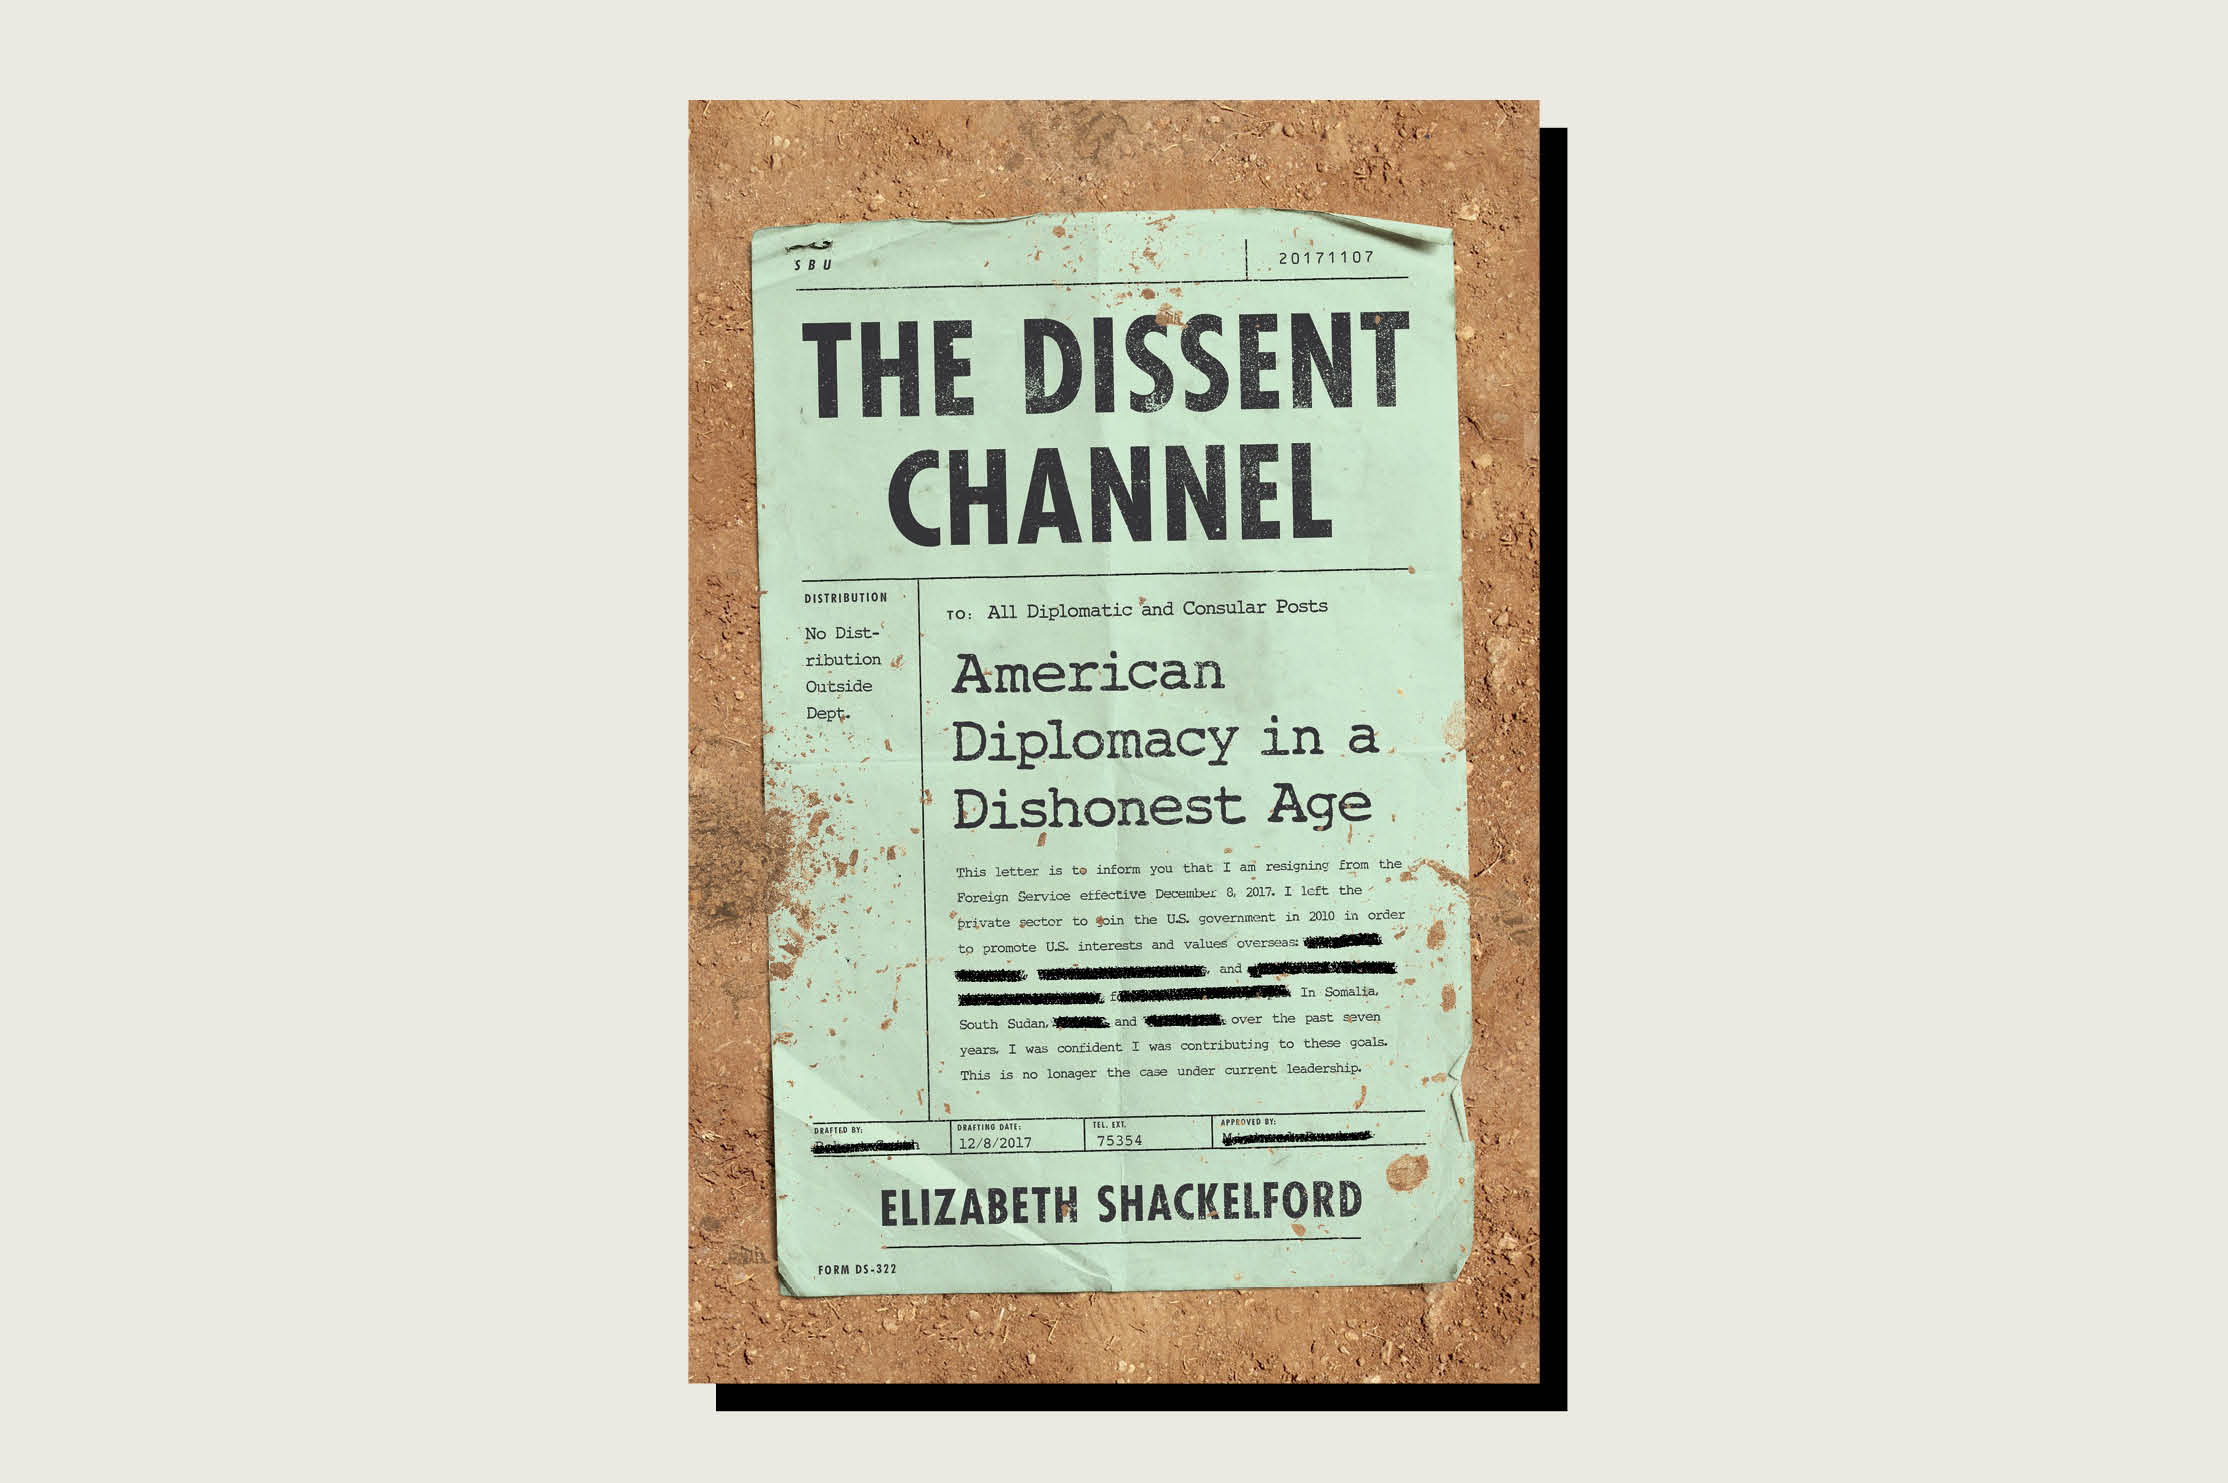 The Dissent Channel: American Diplomacy in a Dishonest Age, Elizabeth Shackelford, PublicAffairs, 304 pp., .99, May 2020